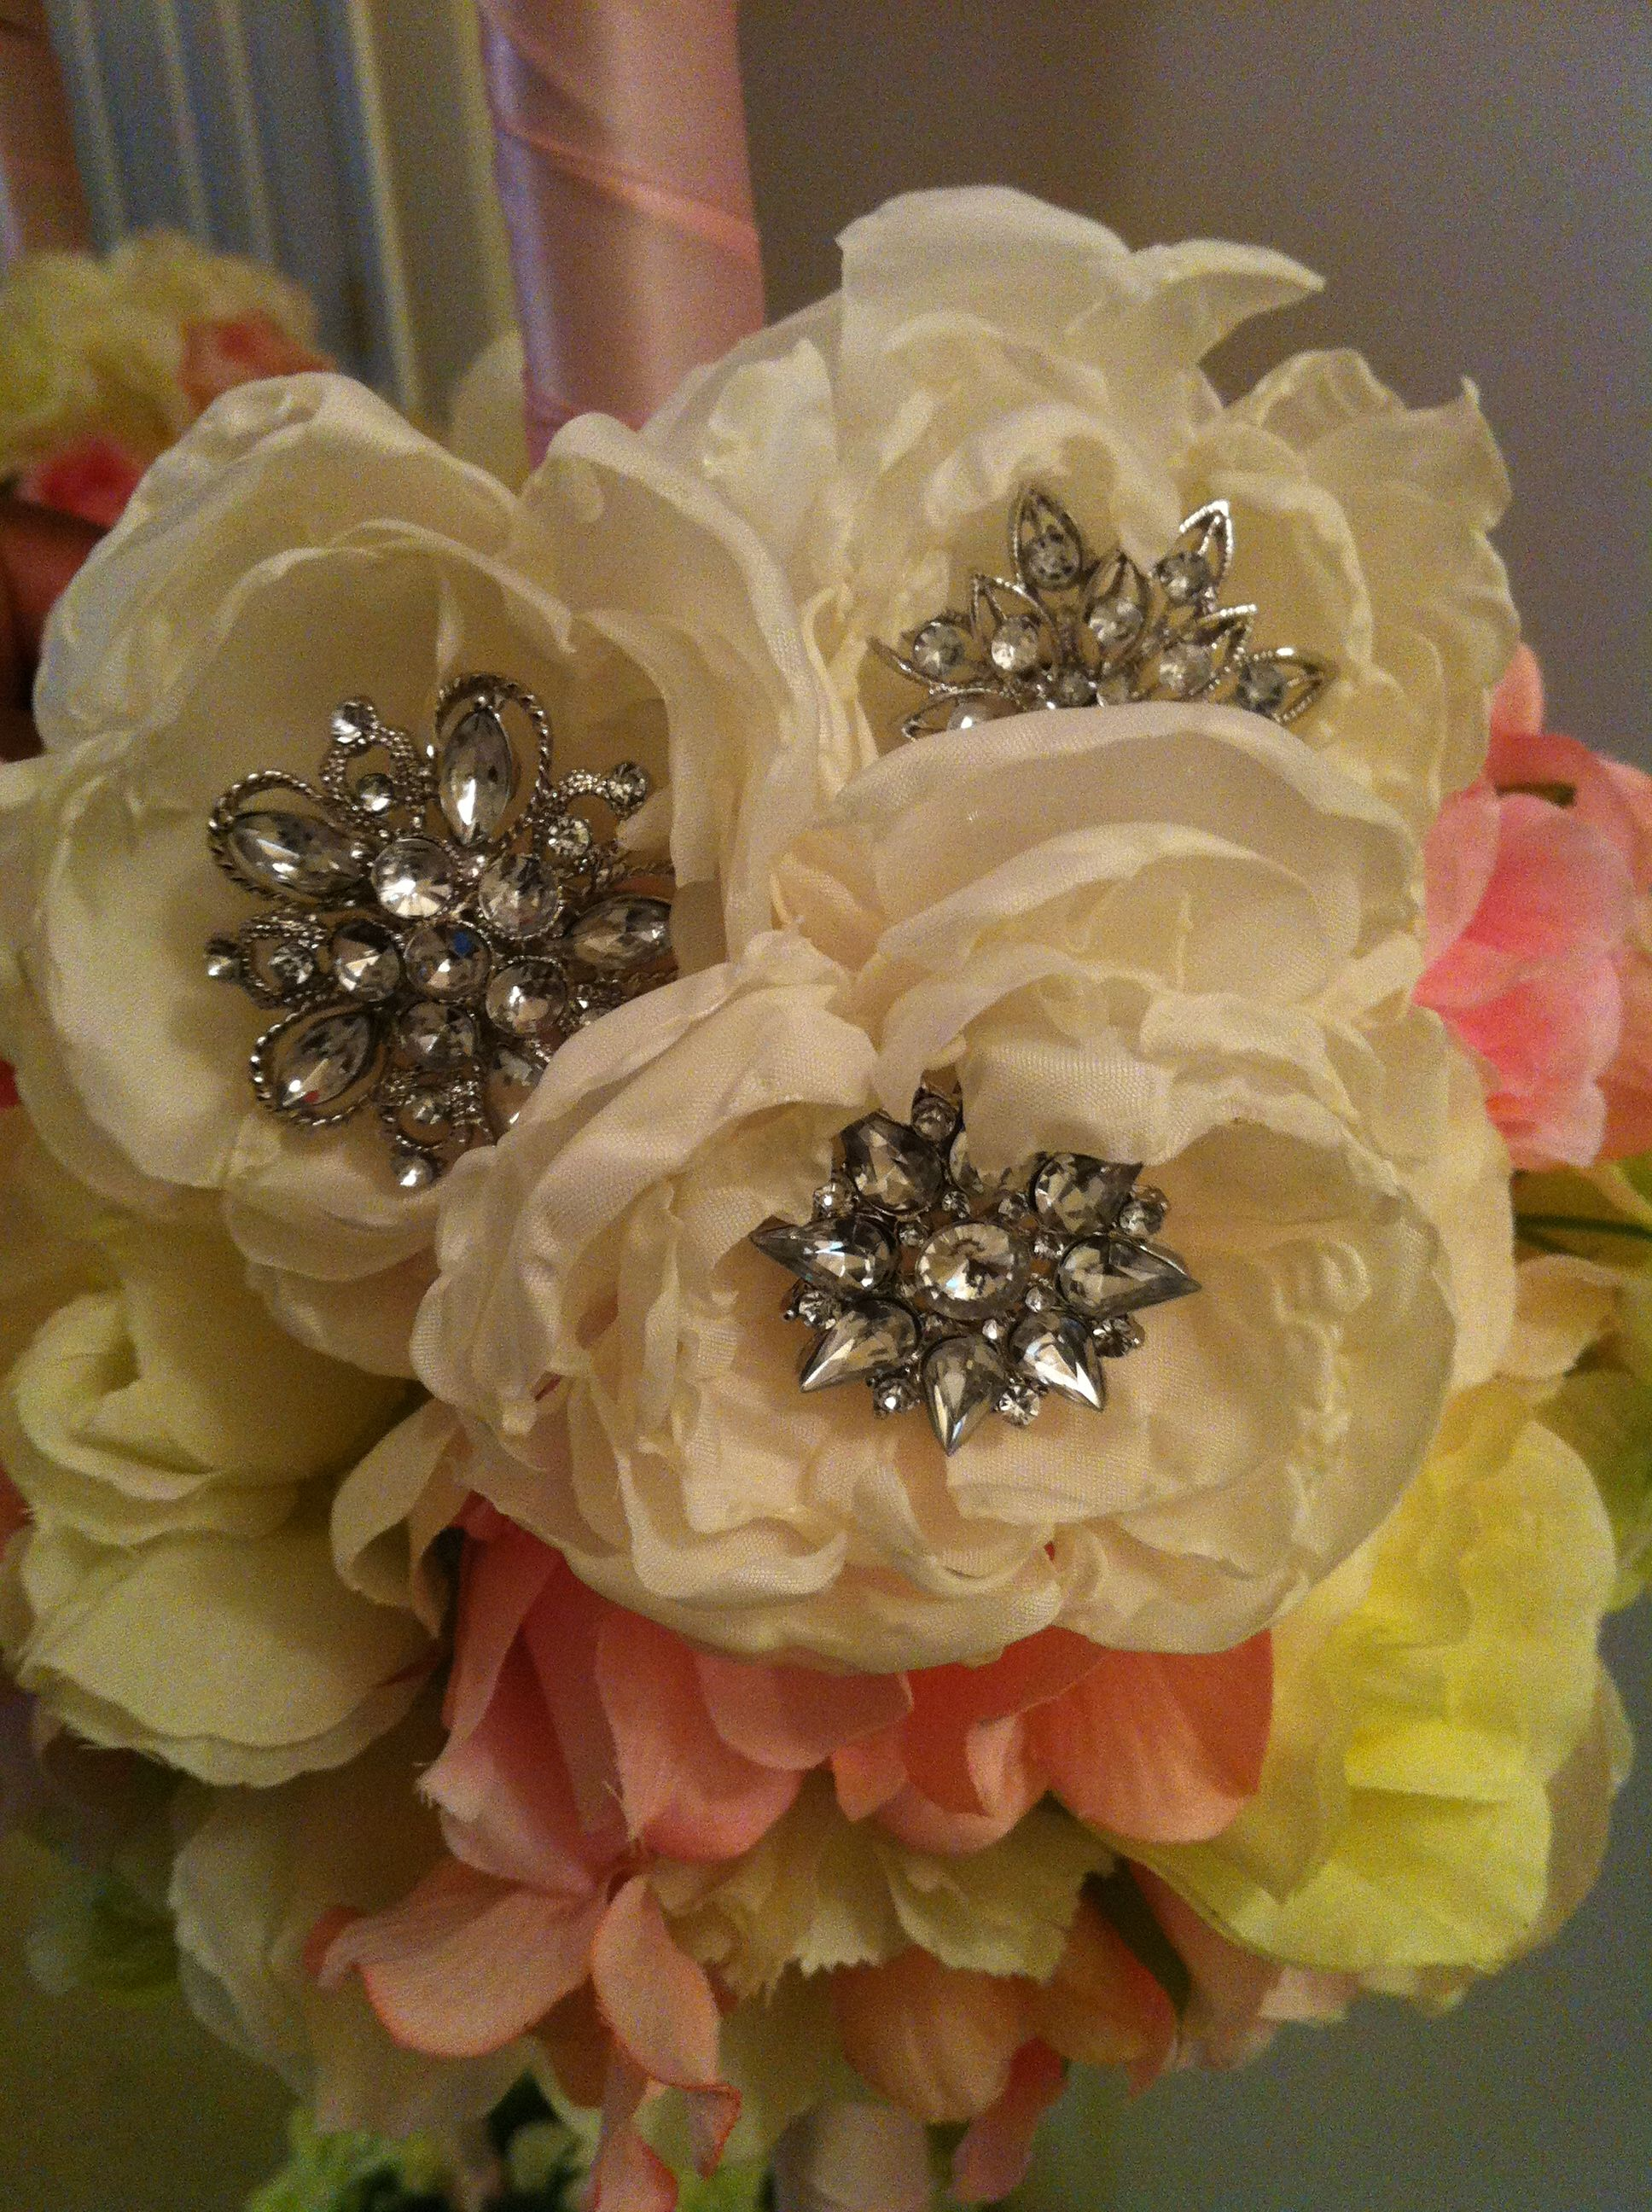 My diy fabric flowers for use in my brooch bouquets wedding my diy fabric flowers for use in my brooch bouquets wedding bouquet brooch diy flowers izmirmasajfo